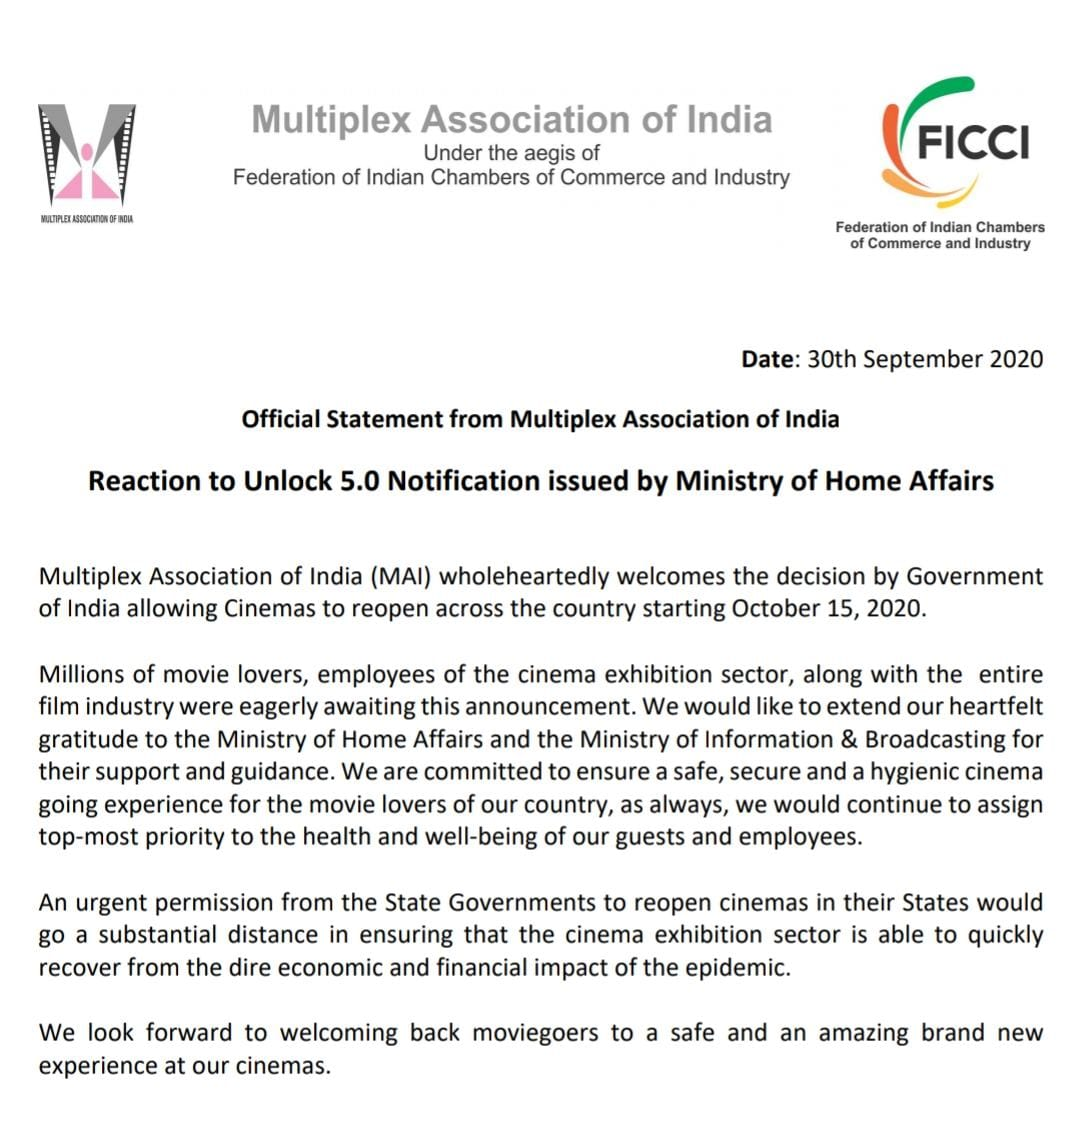 MAI Statement on Unlock 5.0 Notification issued by Ministry of Home Affairs.